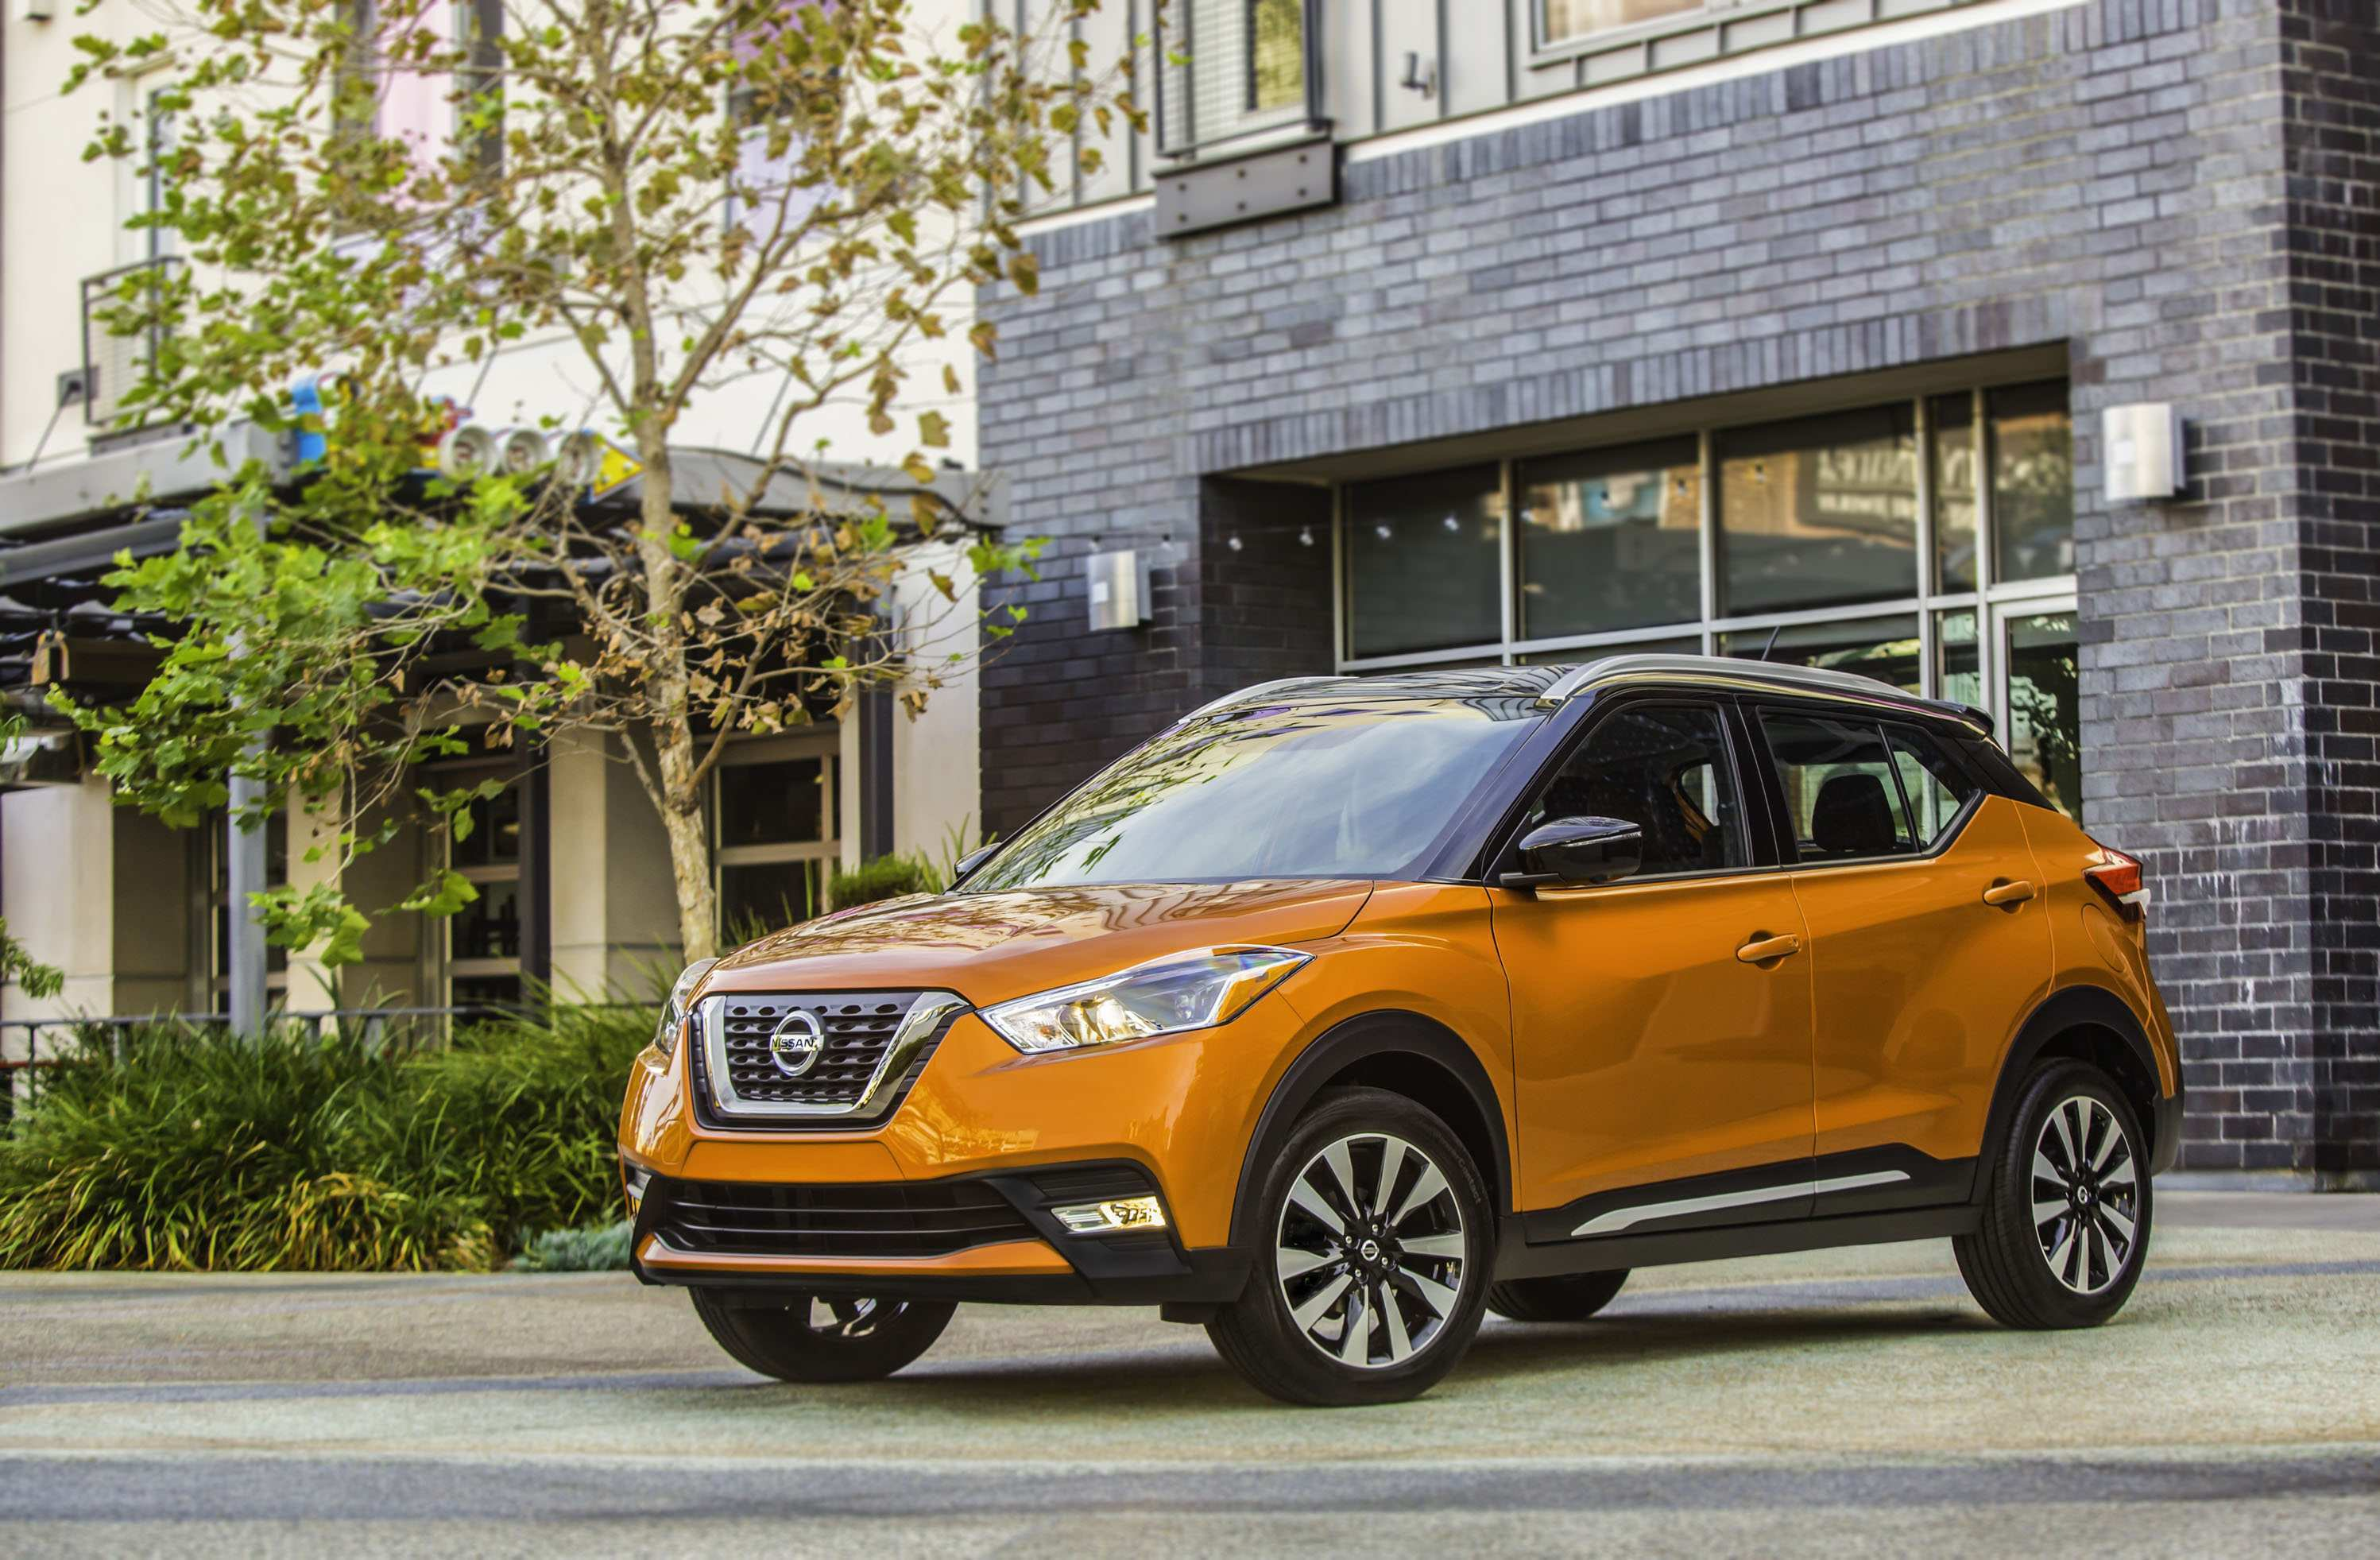 52 Best Review 2019 Nissan Kicks Review Price And Release Date History with 2019 Nissan Kicks Review Price And Release Date